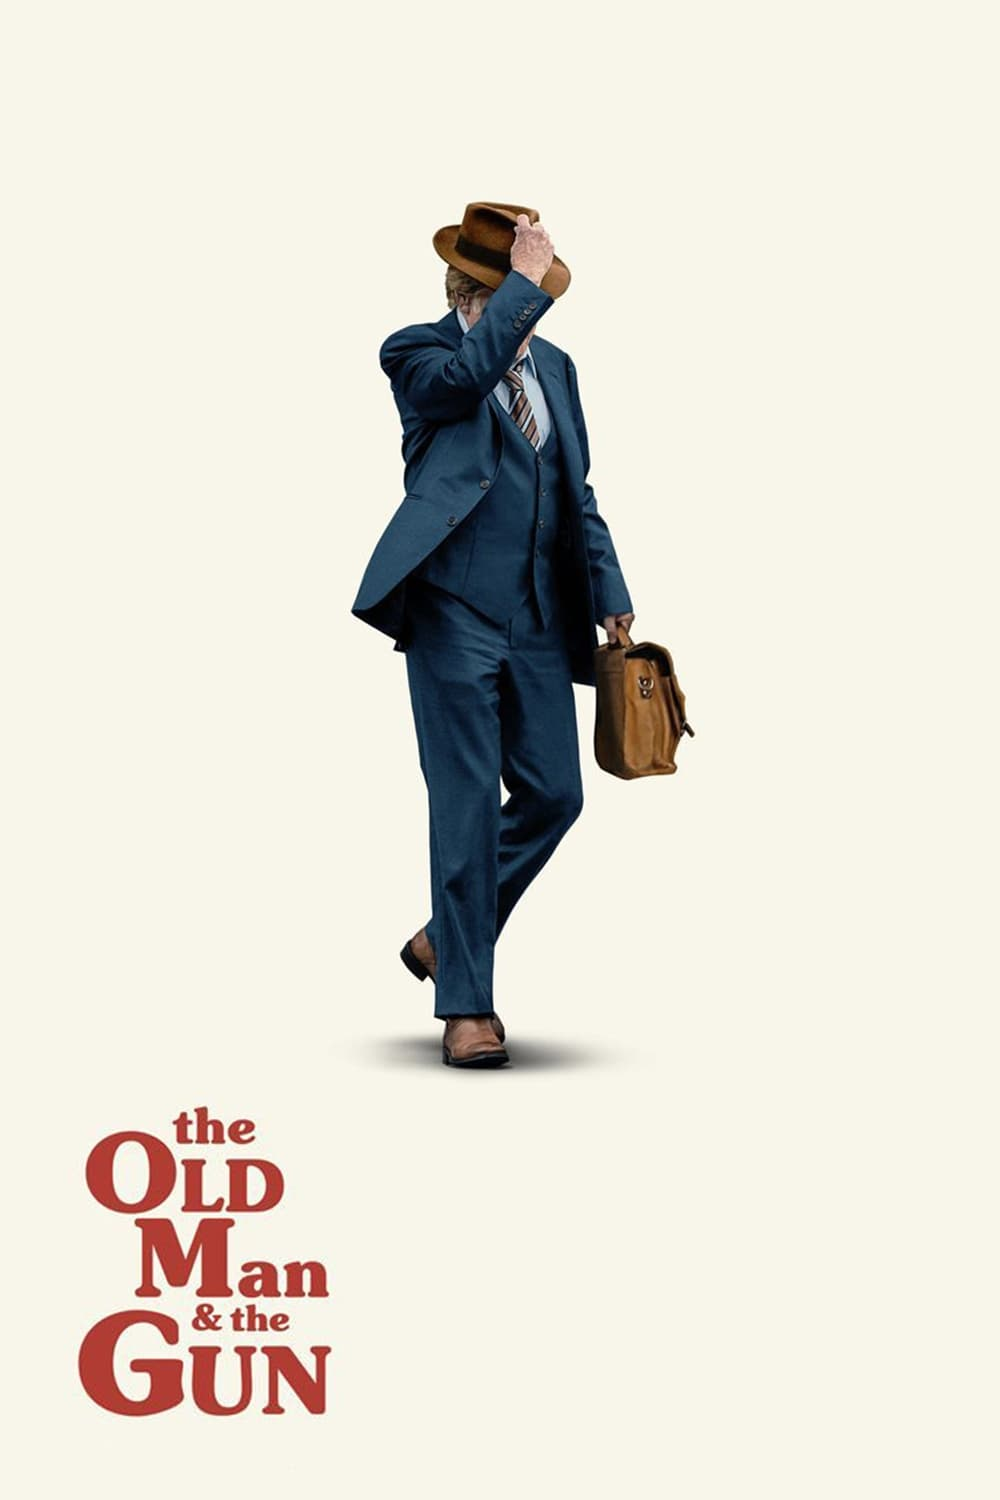 Poster and image movie The Old Man and the Gun